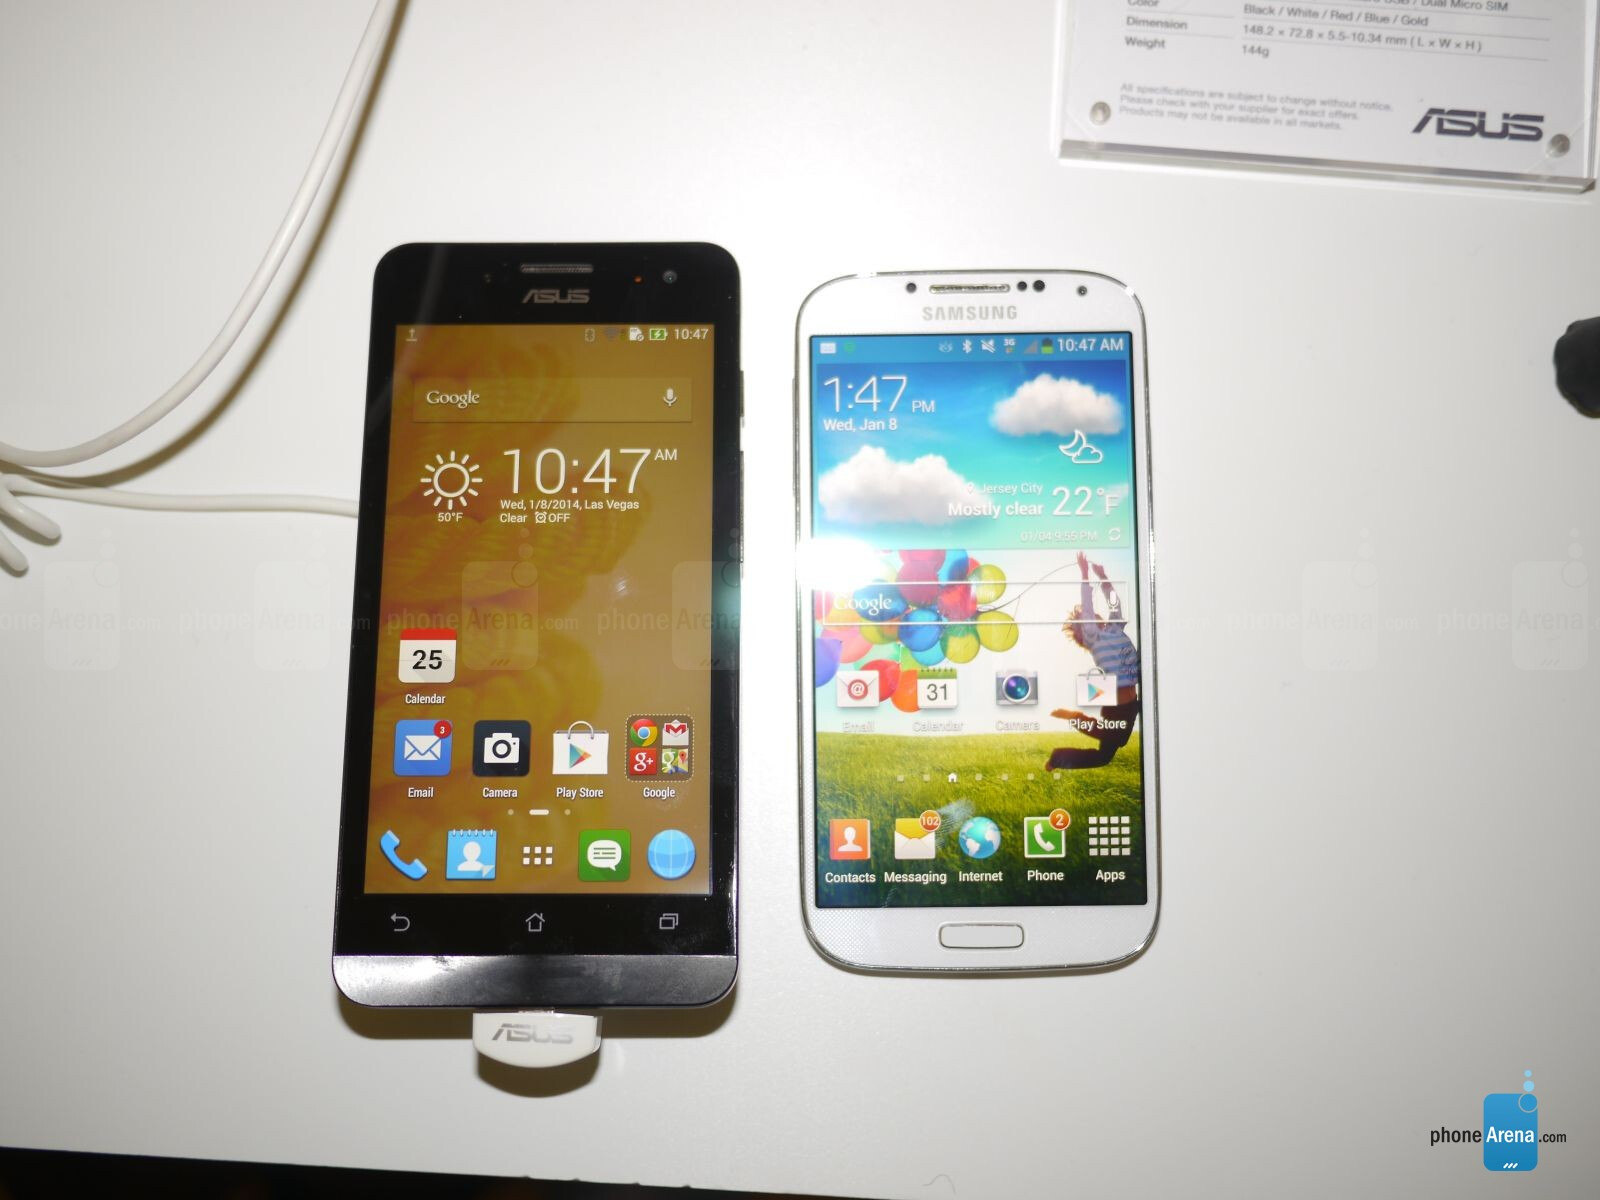 asus zenfone 5 vs samsung galaxy s4 first look phonearena reviews. Black Bedroom Furniture Sets. Home Design Ideas